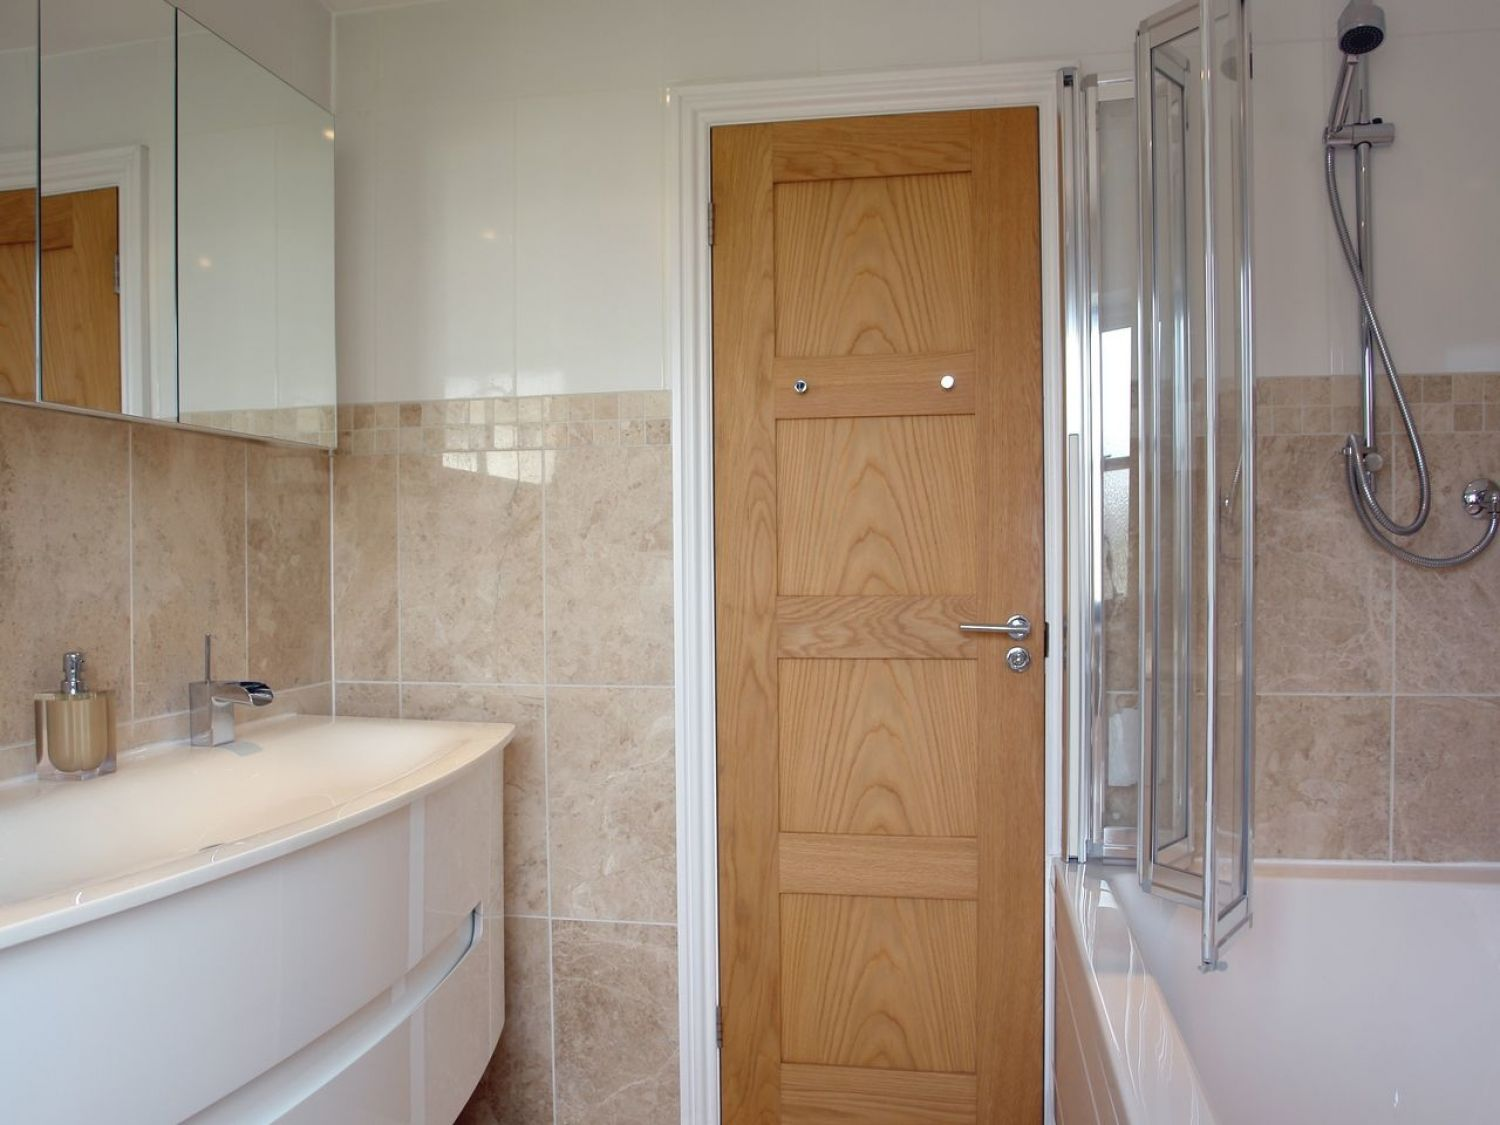 Another Bathroom Fitted By Revamp St Albans Based Revamp Working Together With Hammonds Bathroom Heating Can Manage All Aspects Of B Bathroom Bathtub Storage